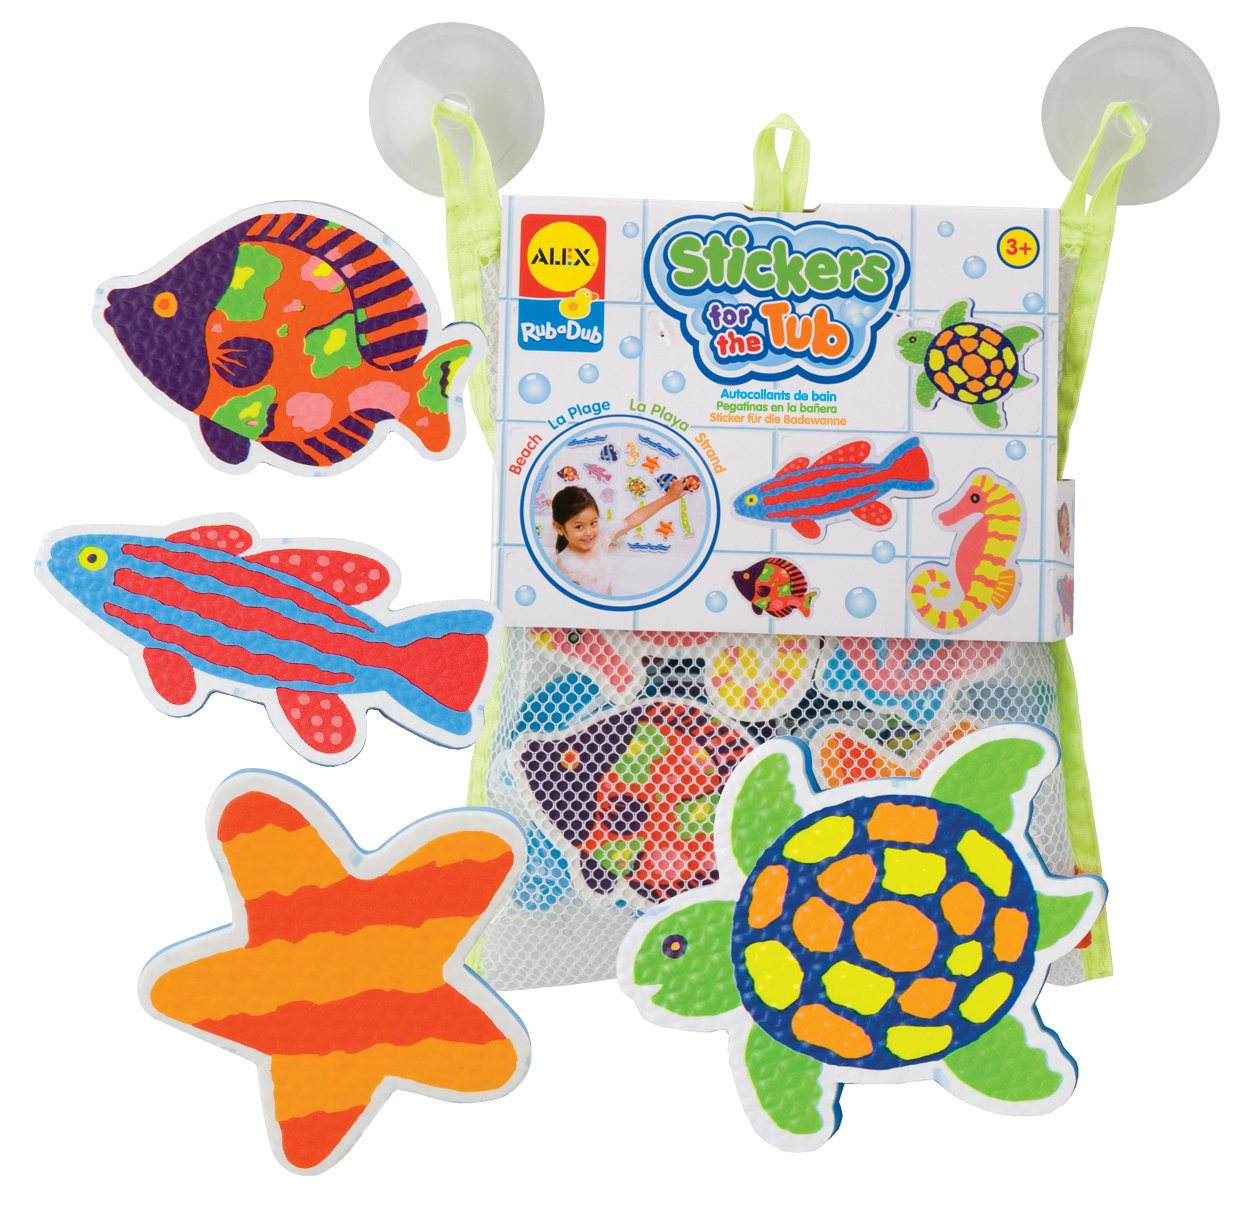 Alex Rub a Dub Beach Stickers for the Tub bath toy Cuckoo 633W